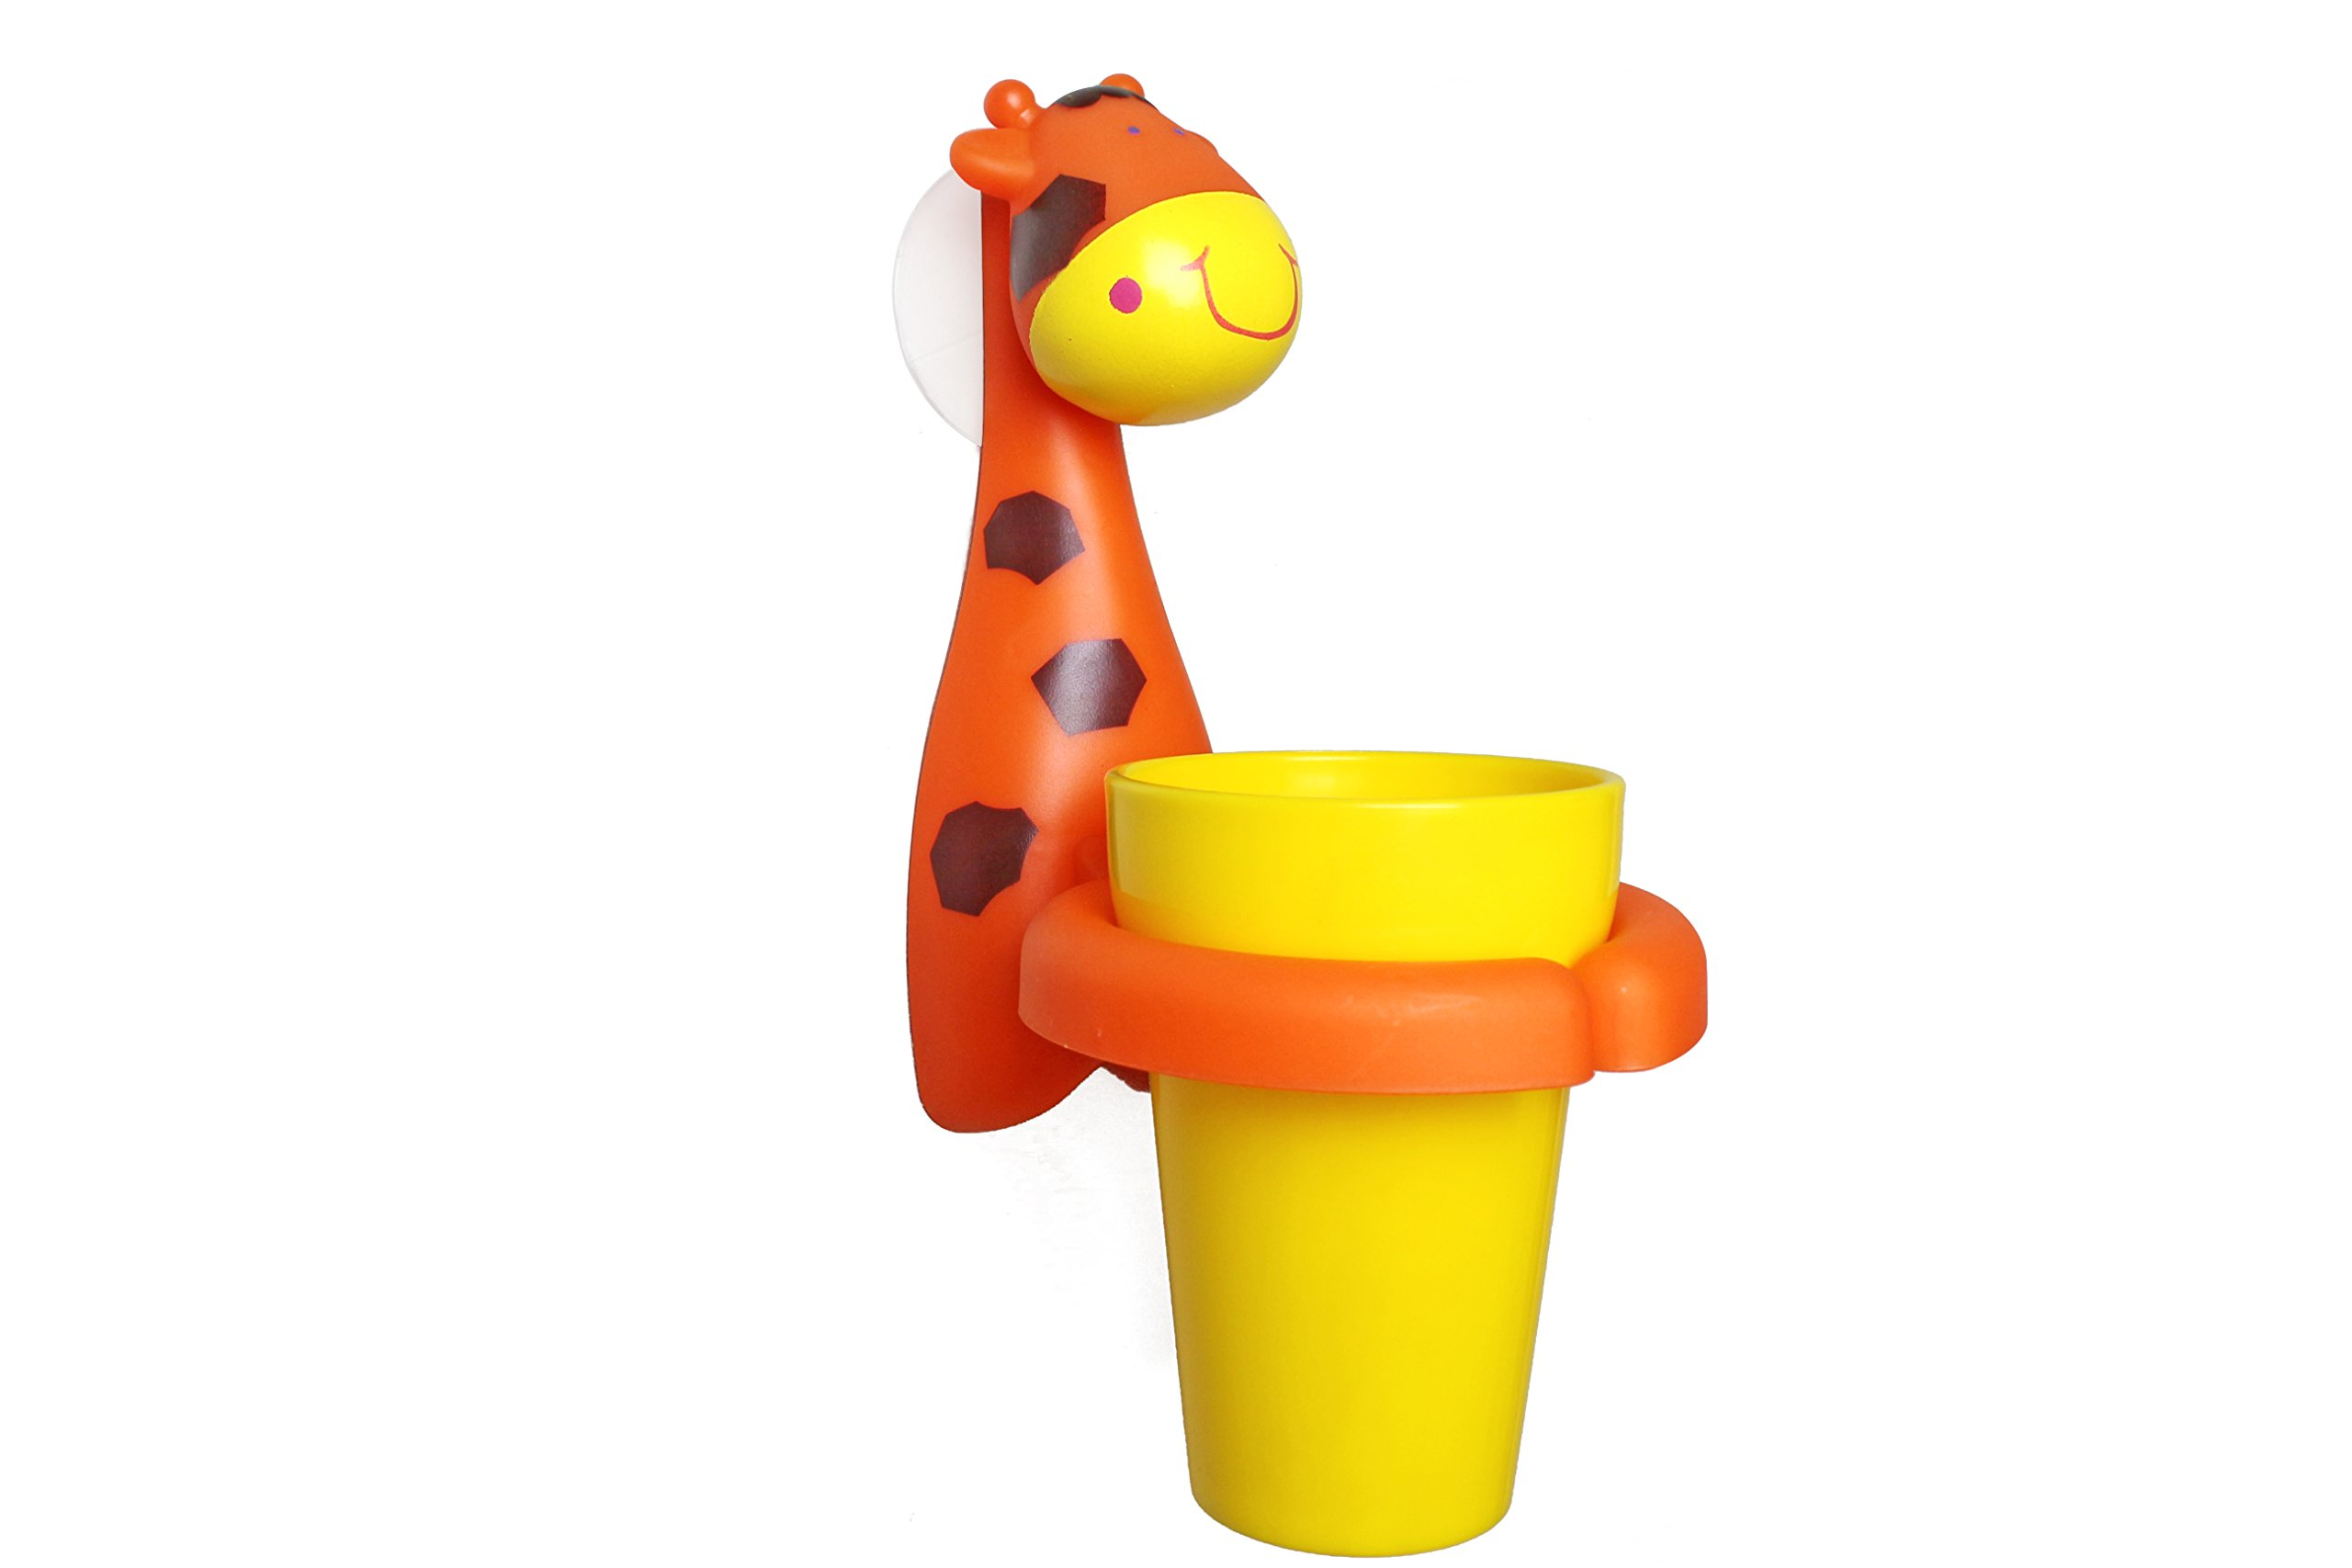 Excelity Cute Animal Child Kid Toothbrush Set with Toothbrush Rinse Cup and Holder (Giraffe) by Excelity